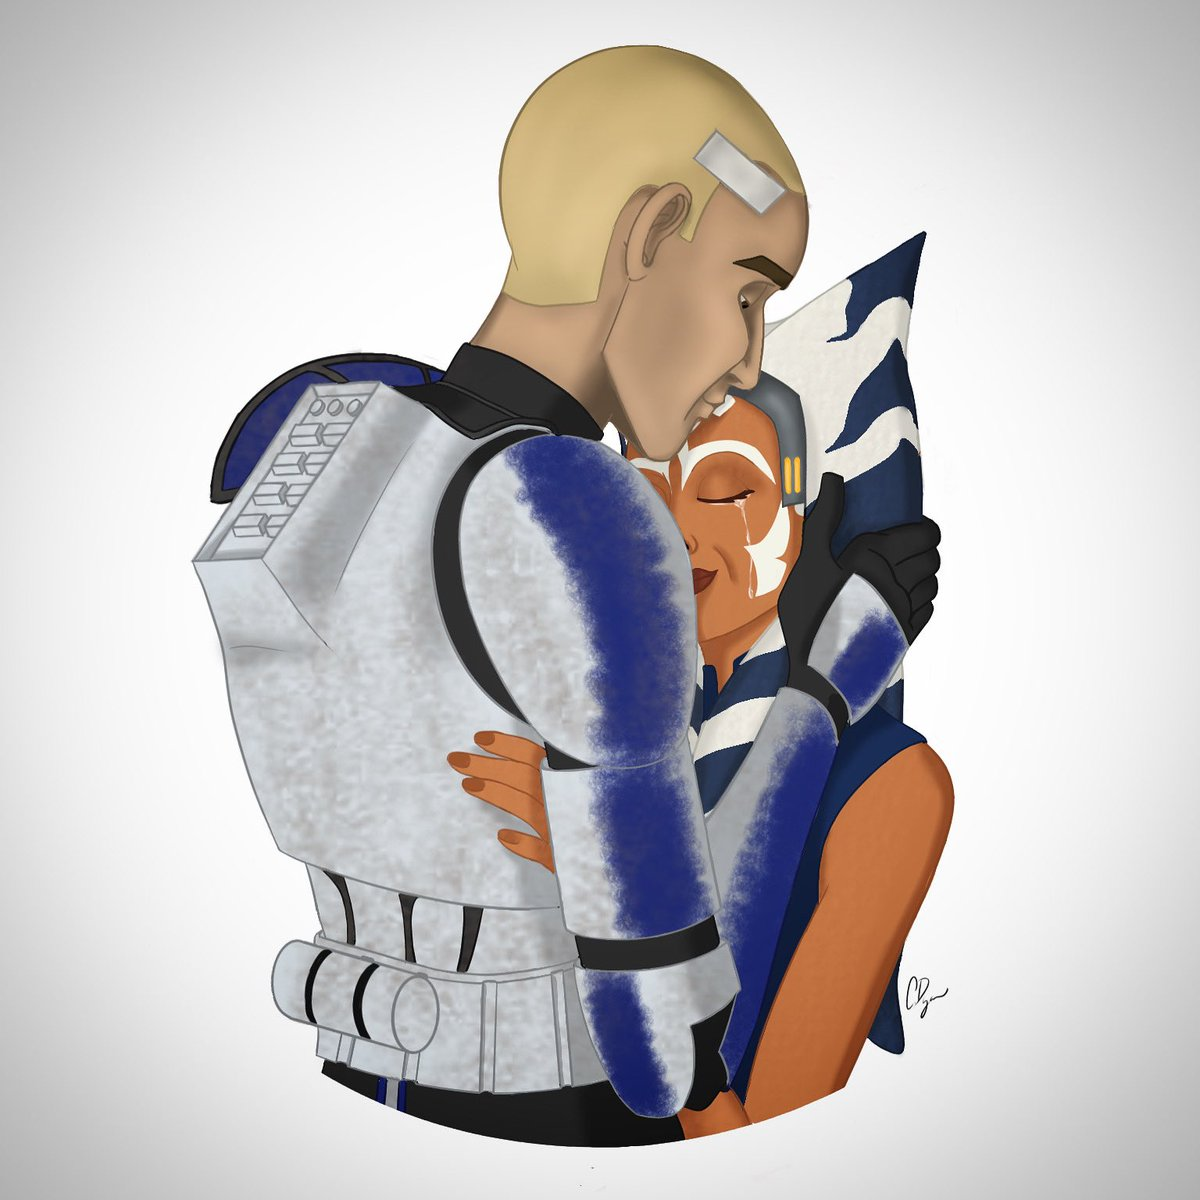 """""""There. I Fixed It."""" Thanks @starwars for crushing my soul. Anyway I know I'm not the greatest at digital drawing and art but I tried and that's what counts right? #CloneWars #captainrex #Ahsoka #rexsoka #clonewarsfinale #Order66 #fanart  Instagram link: https://t.co/E8lKWABdbe https://t.co/QpUpkBSpJr"""